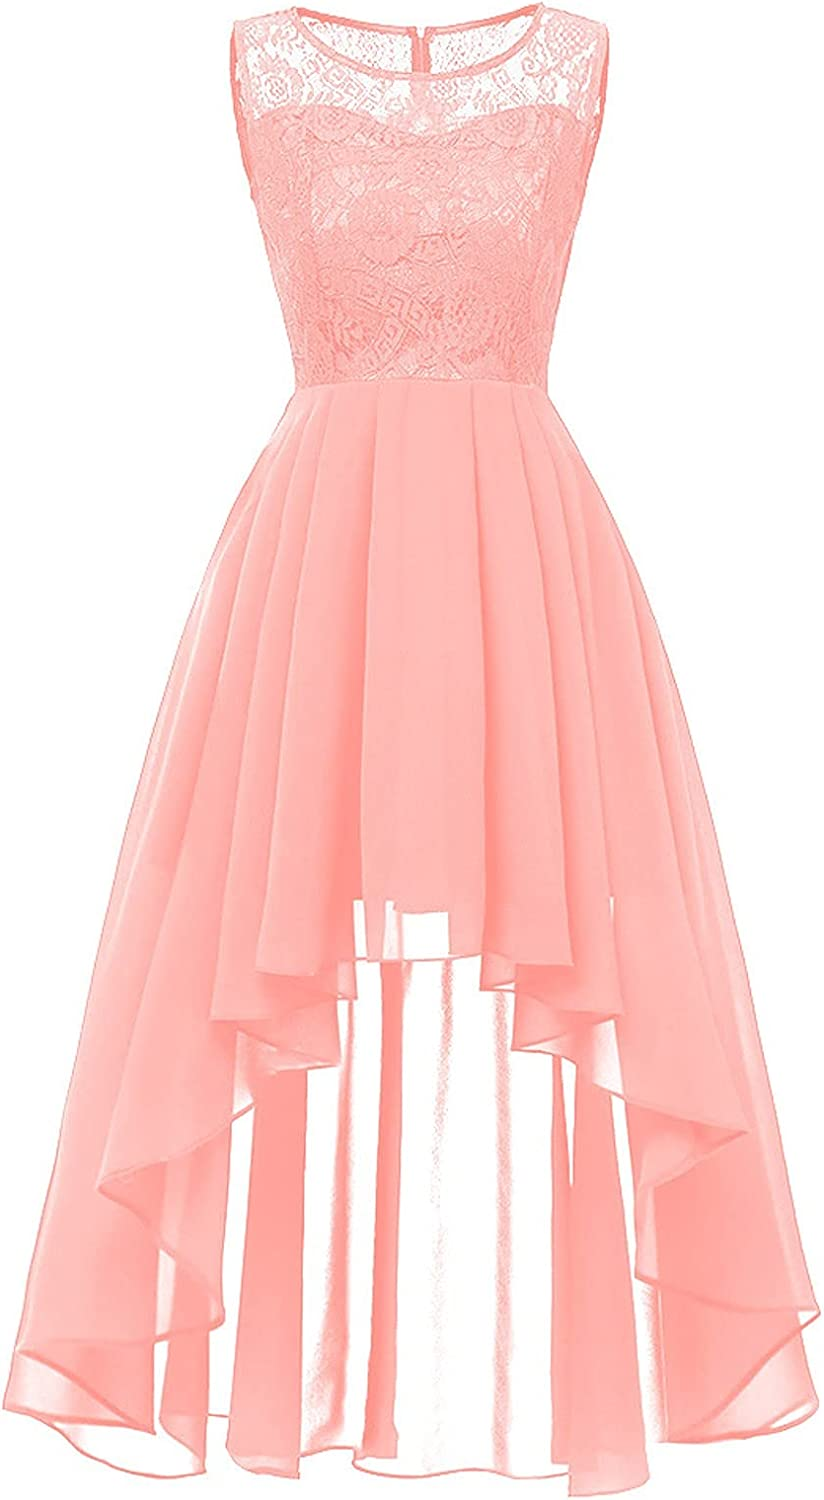 Vintage Floral Lace Cocktail Dress for Women Sleeveless Hi-Lo A Line Wedding Guest Party Bridesmaid Formal Swing Dress